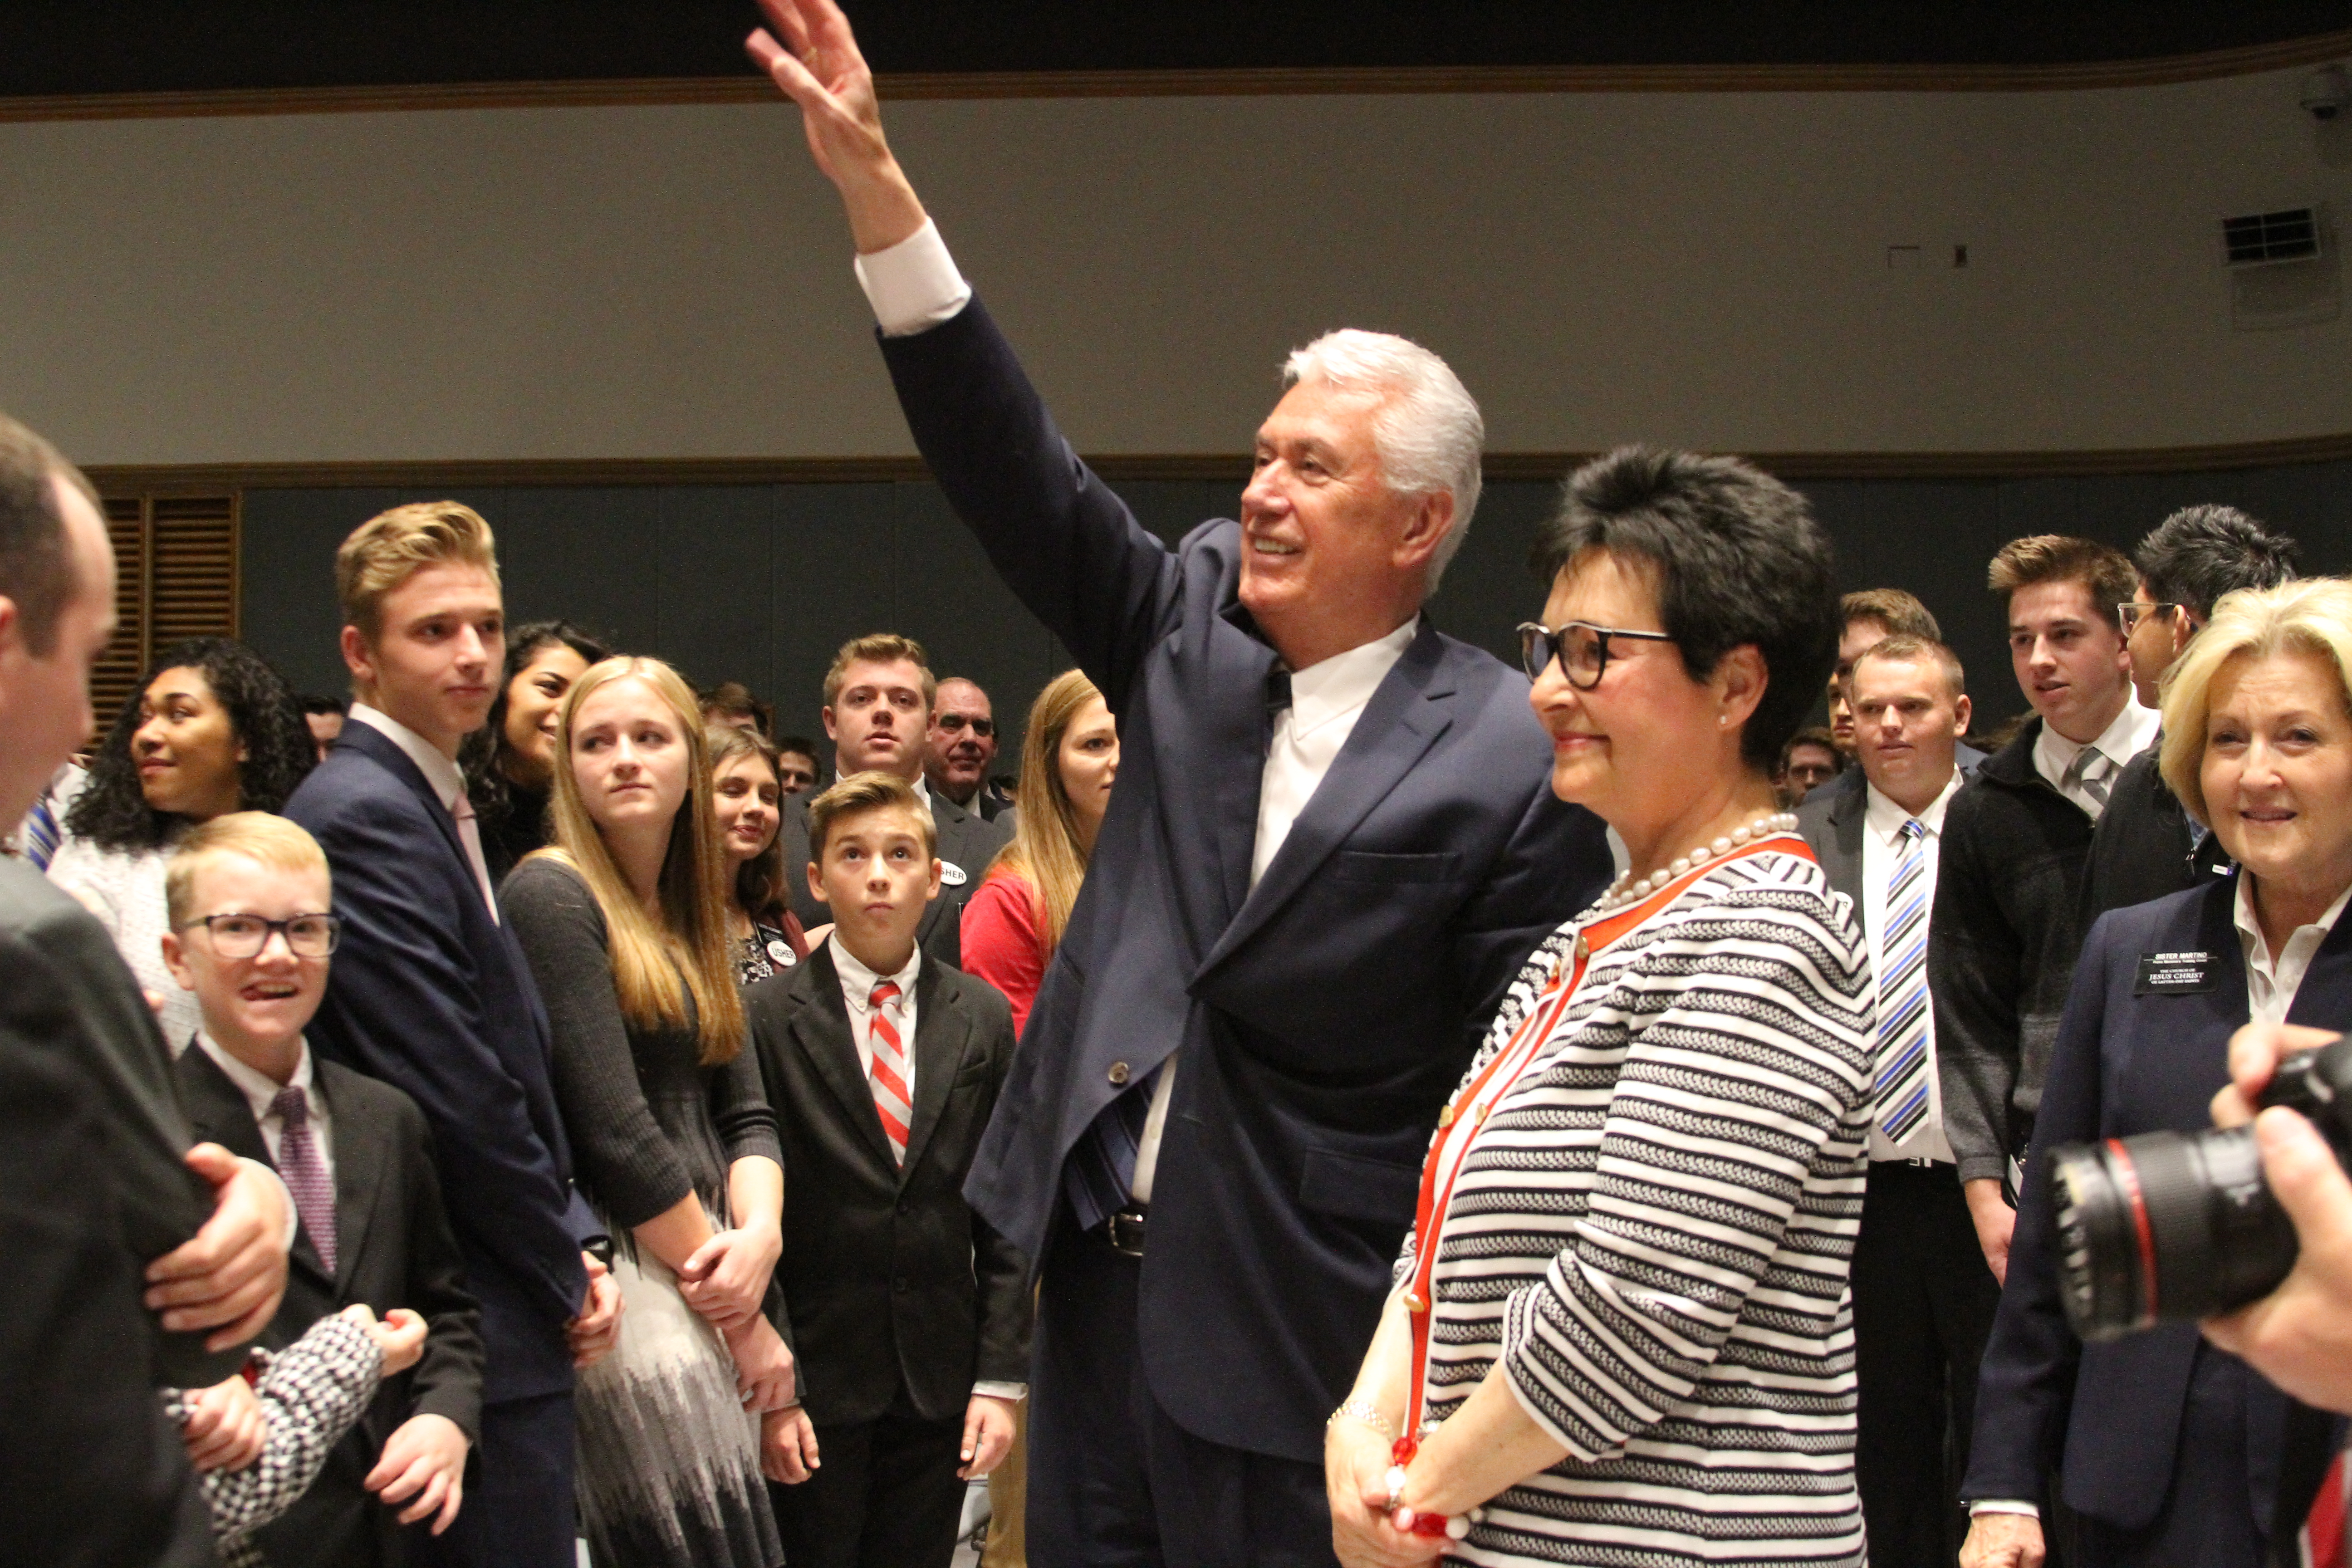 Elder Dieter F. Uchtdorf of the Quorum of the Twelve Apostles, with his wife, Sister Harriet Uchtdorf, waves to missionaries following a Thanksgiving morning devotional in the Provo MTC on Nov. 22, 2018.